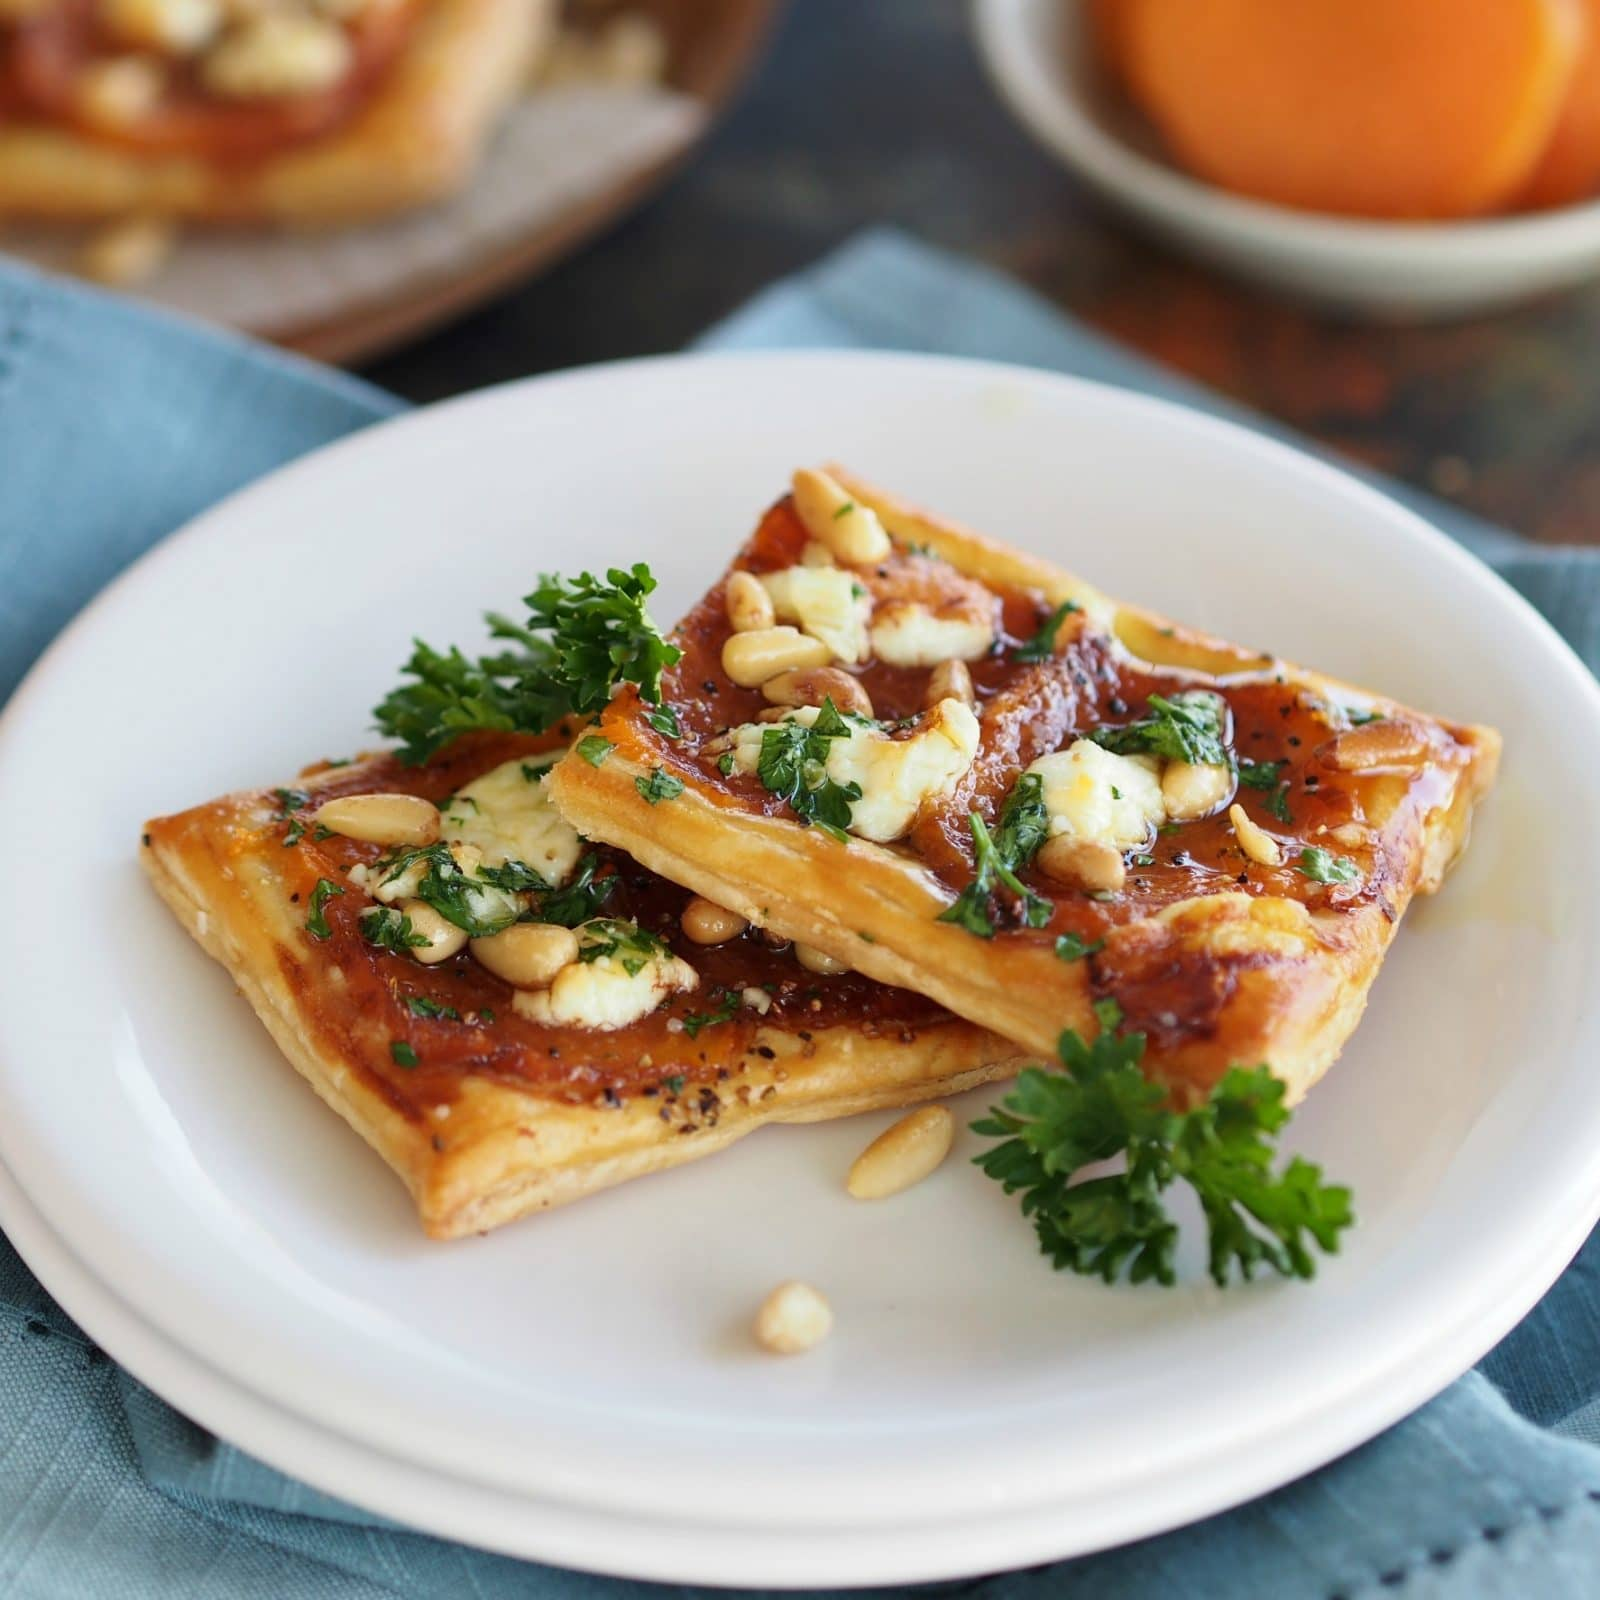 Sweet Potato & Honey Goat Cheese Pizza is just as delicious made with freshly baked sweet potatoes or even leftover sweet potatoes from Thanksgiving.